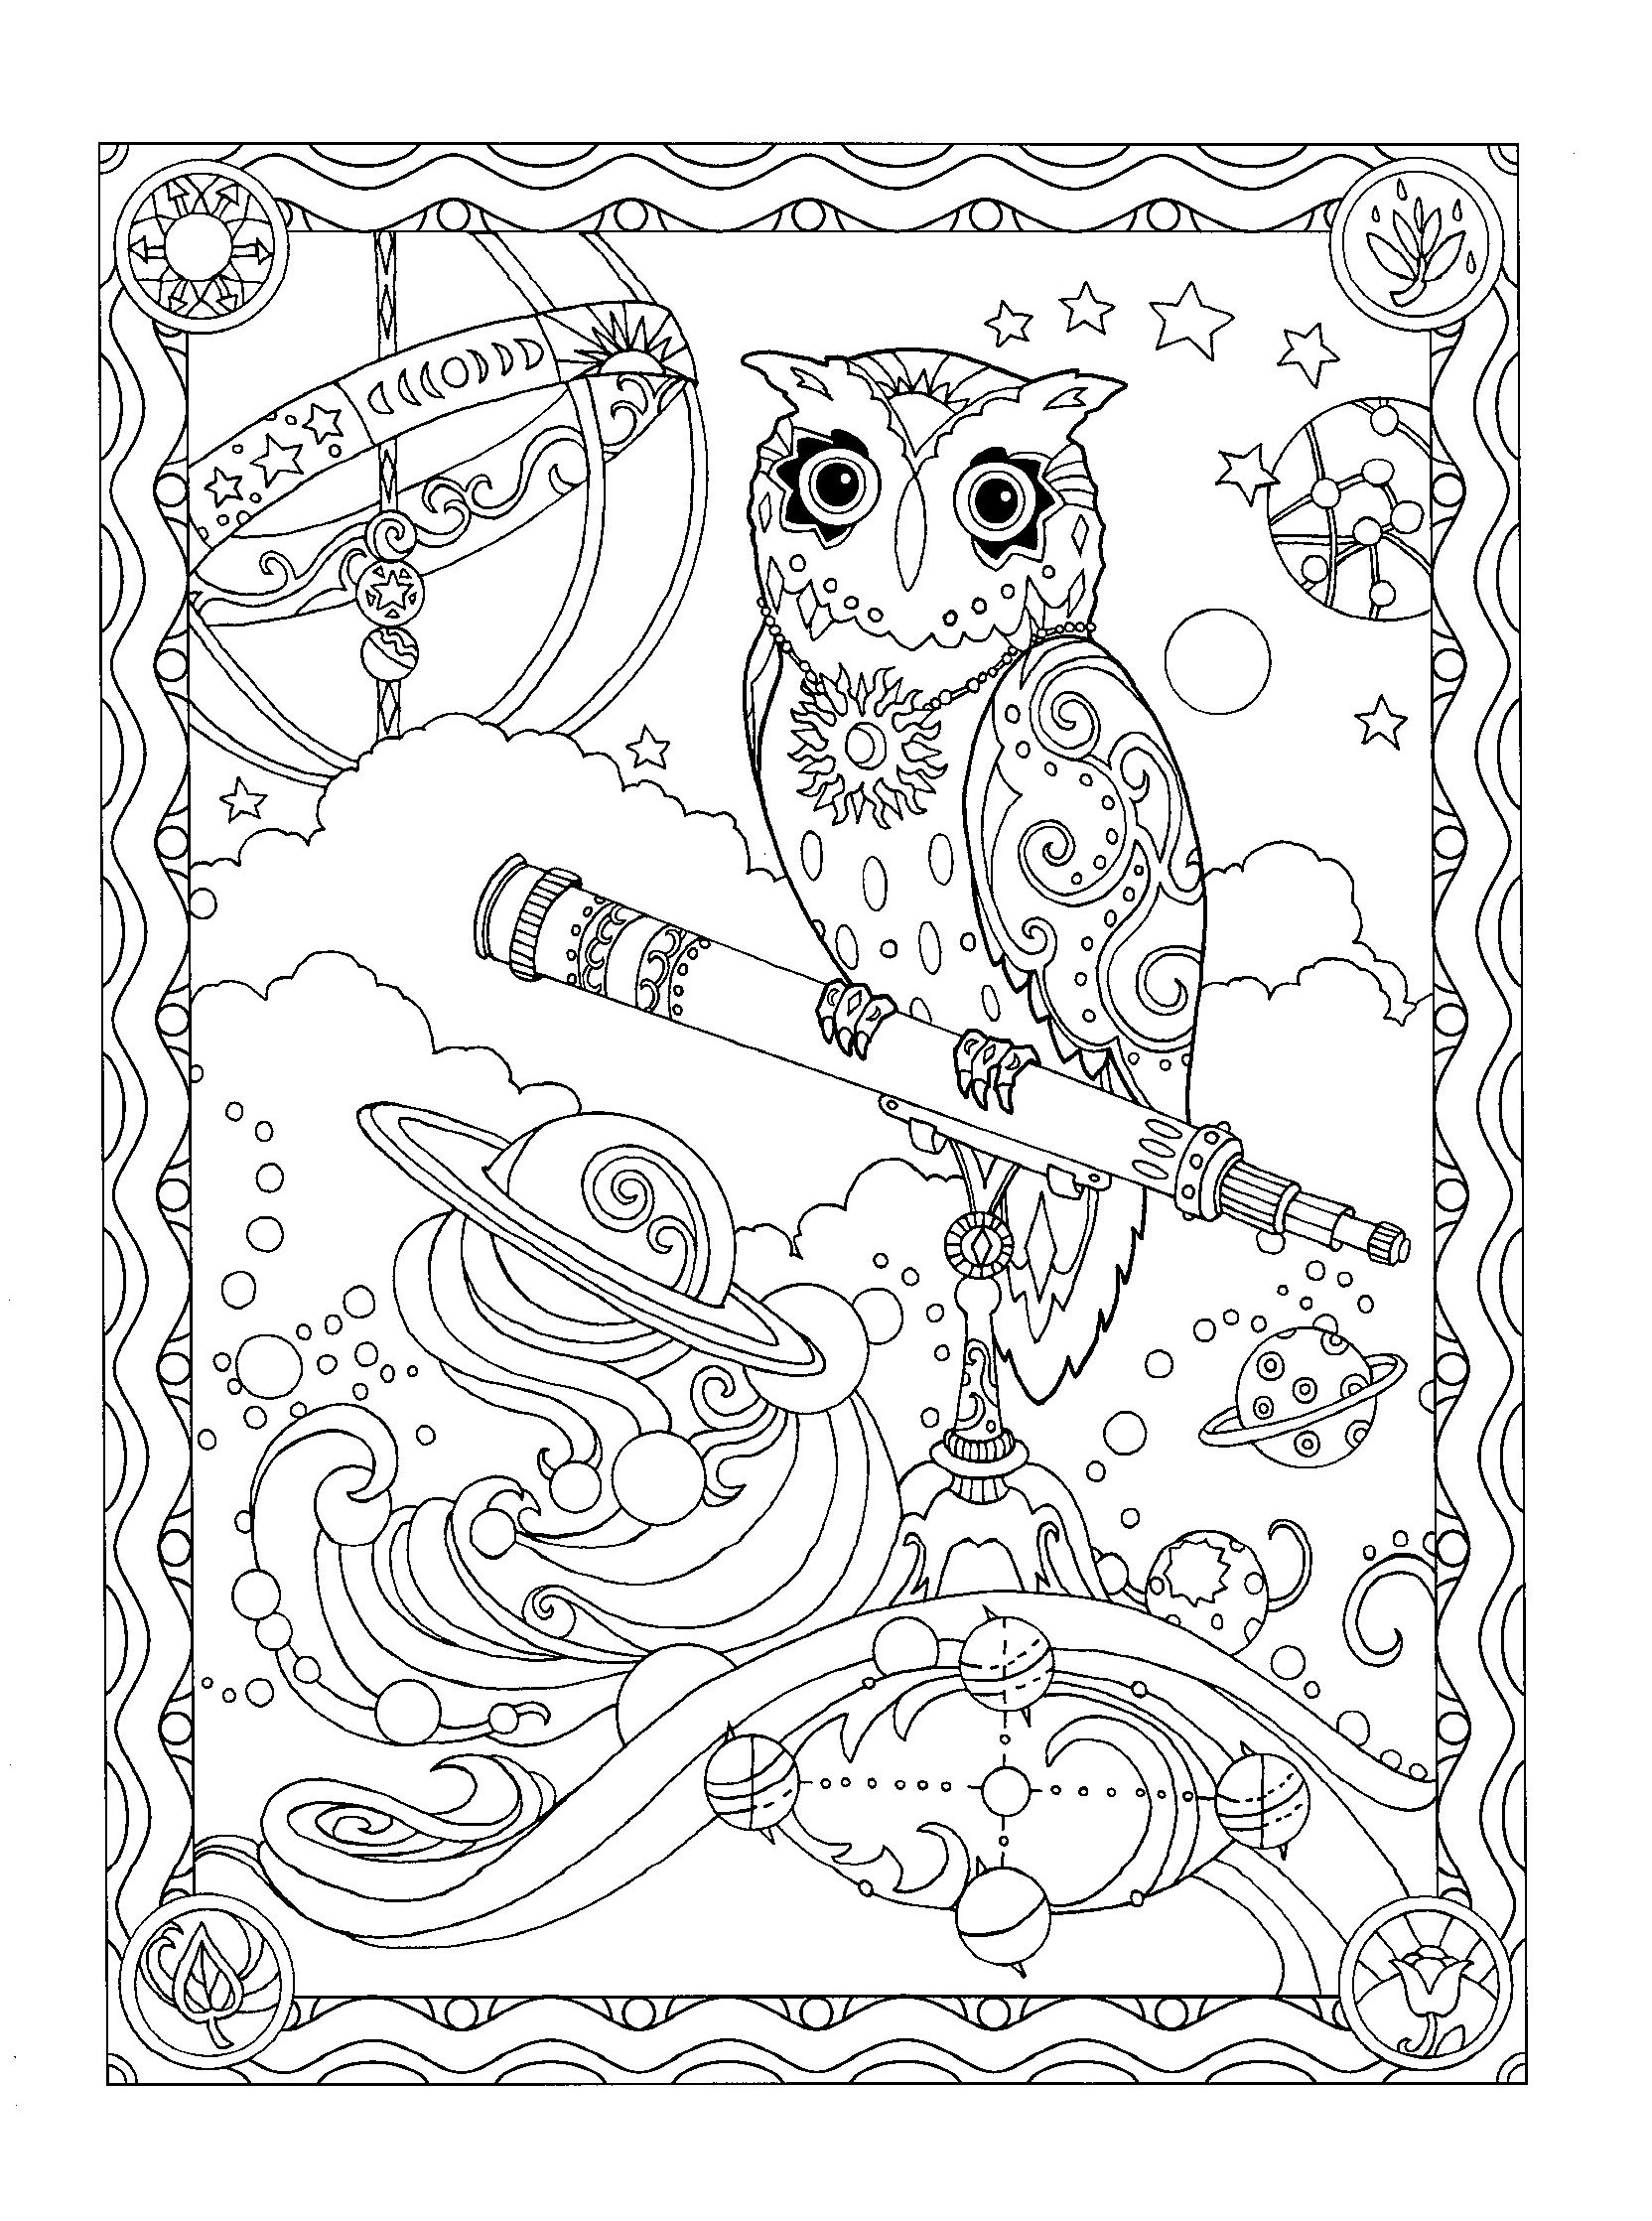 Pin By Alessandra Emidio Pereira On Paper Craft Owl Coloring Pages Coloring Books Coloring Pages